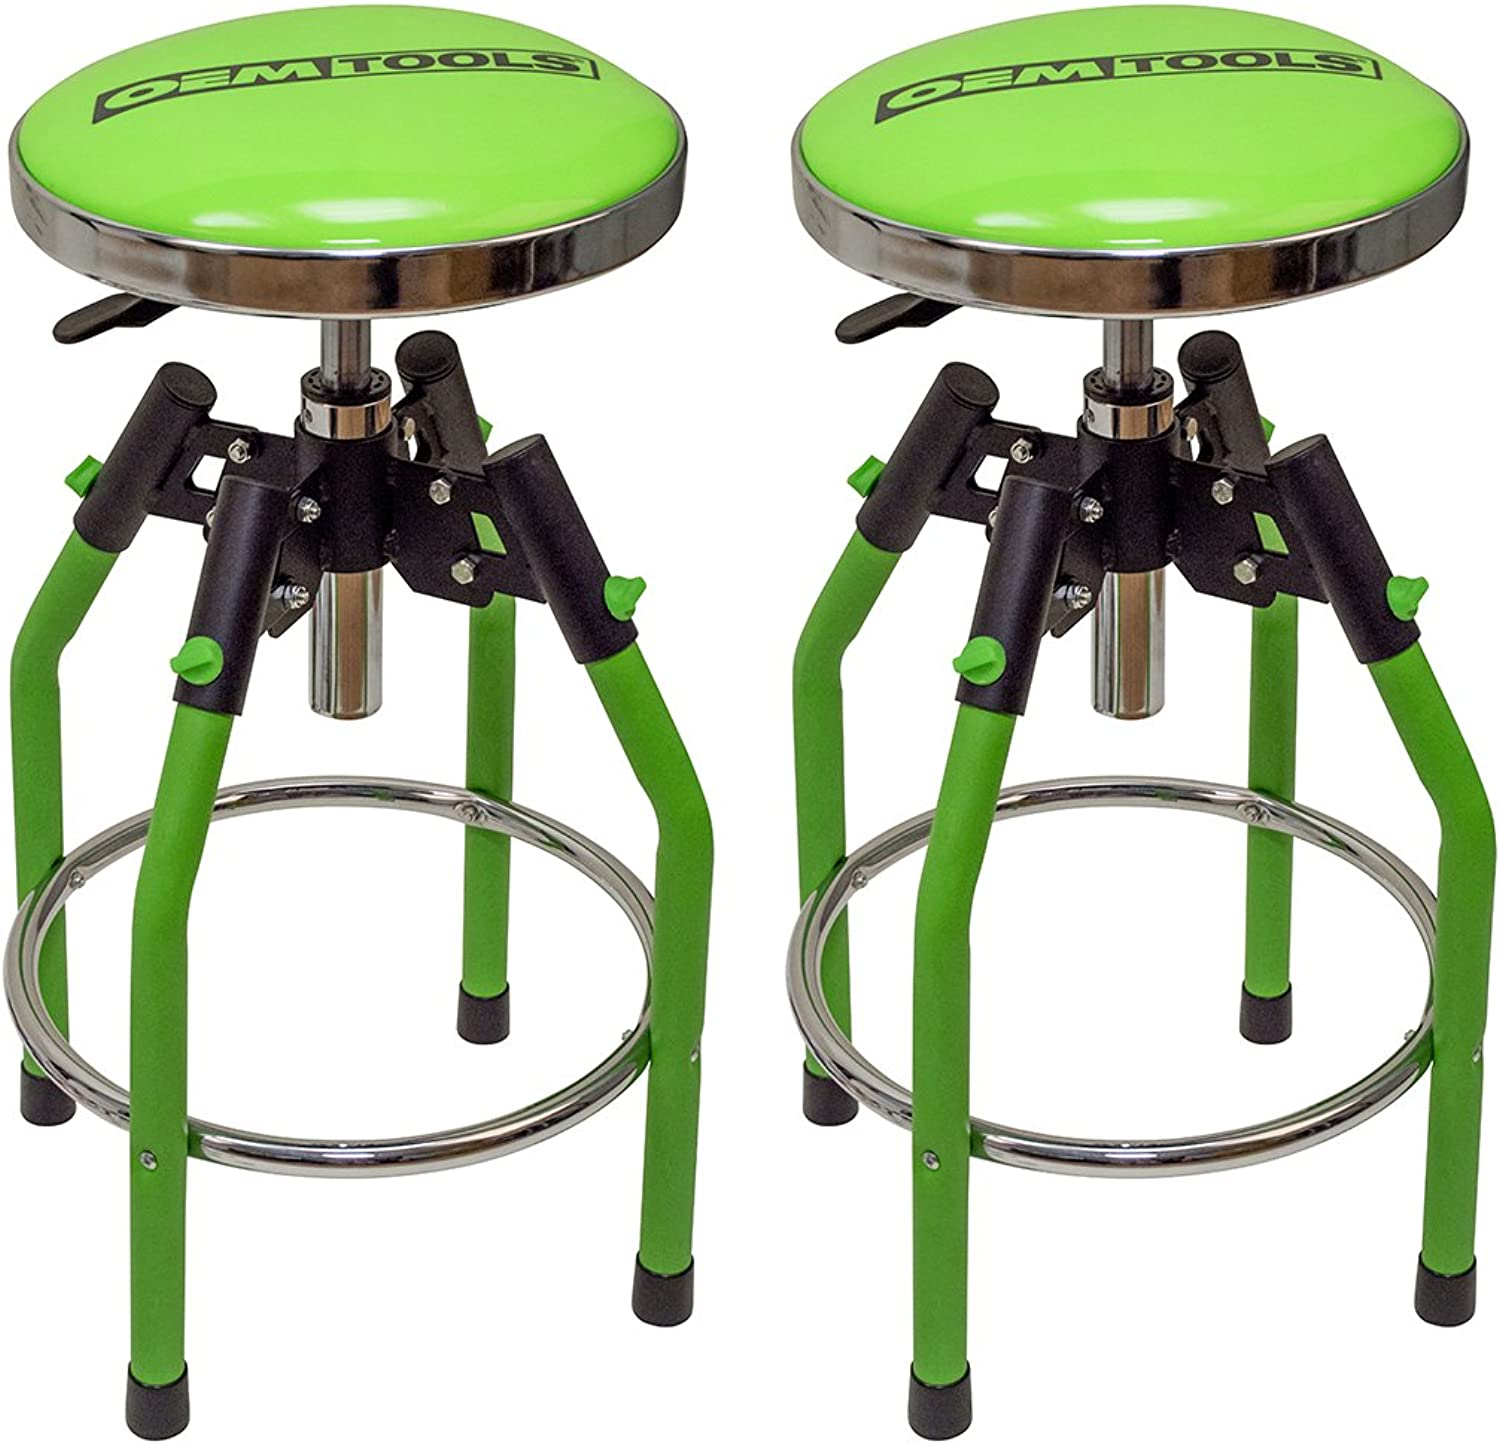 OEMTOOLS 24912 Adjustable Hydraulic Shop Stool - 2 Pack